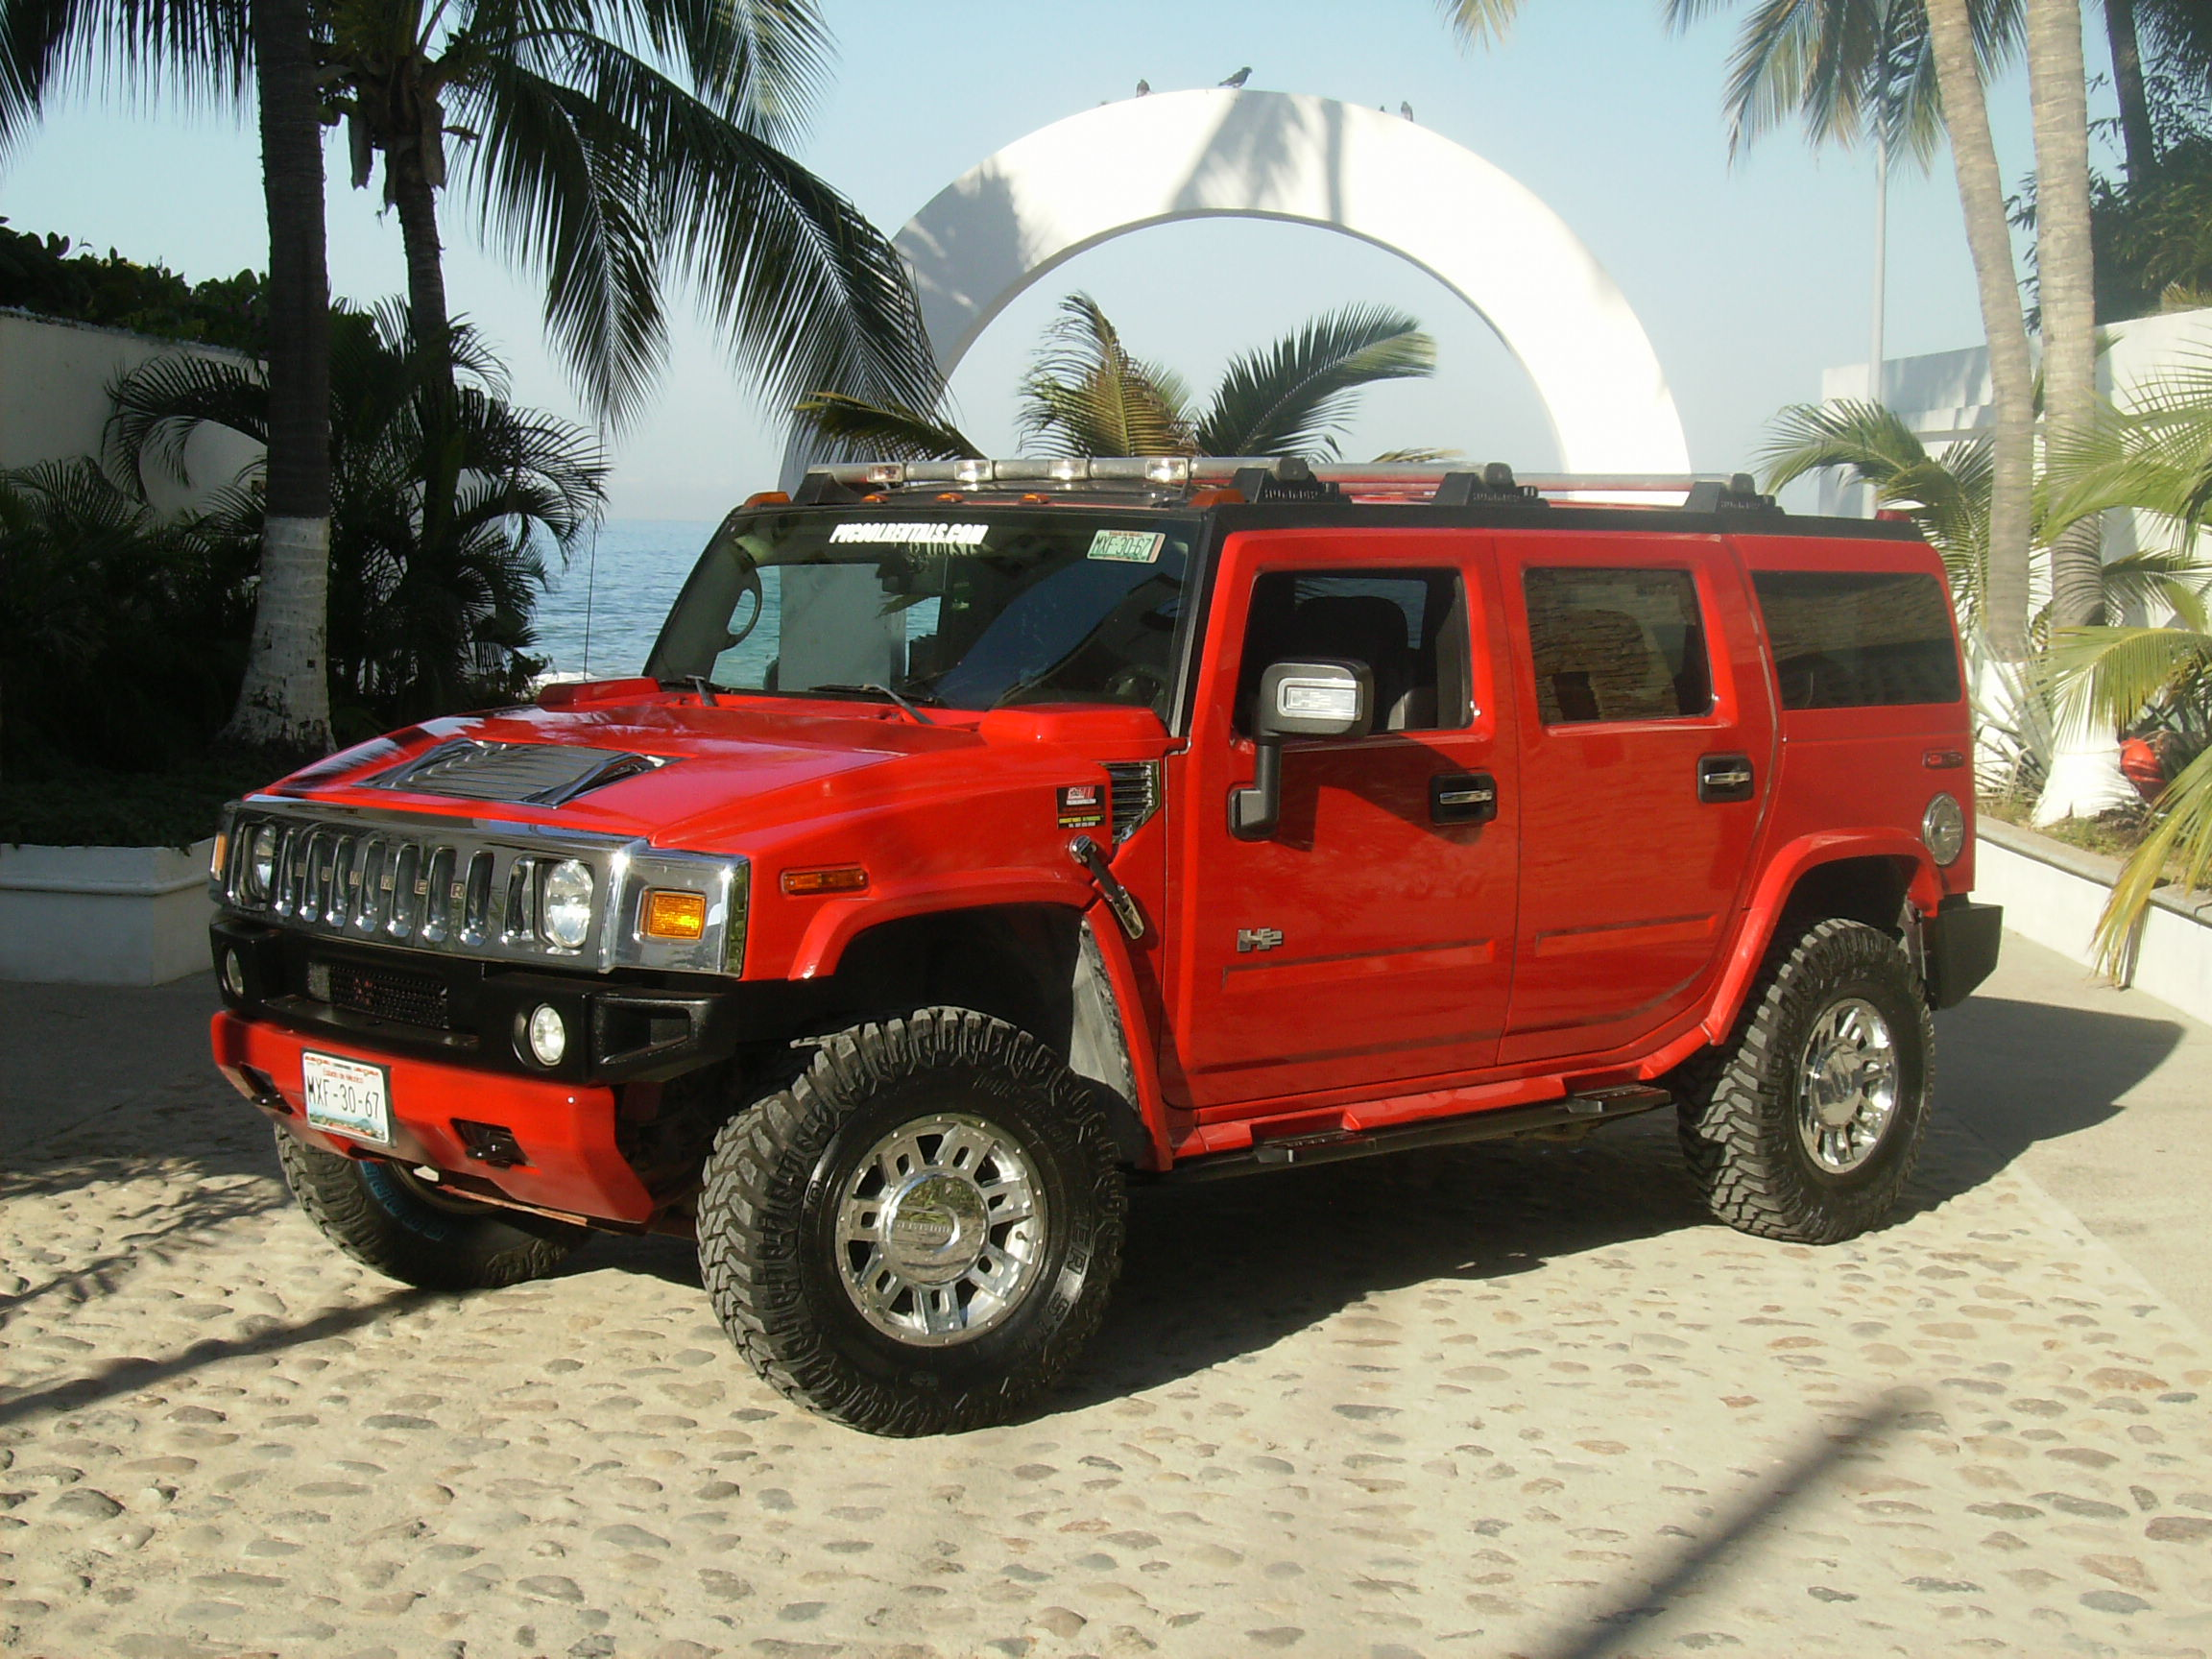 cabrio cars rubicon wrangler autos jeep ibiza d in recon a rent